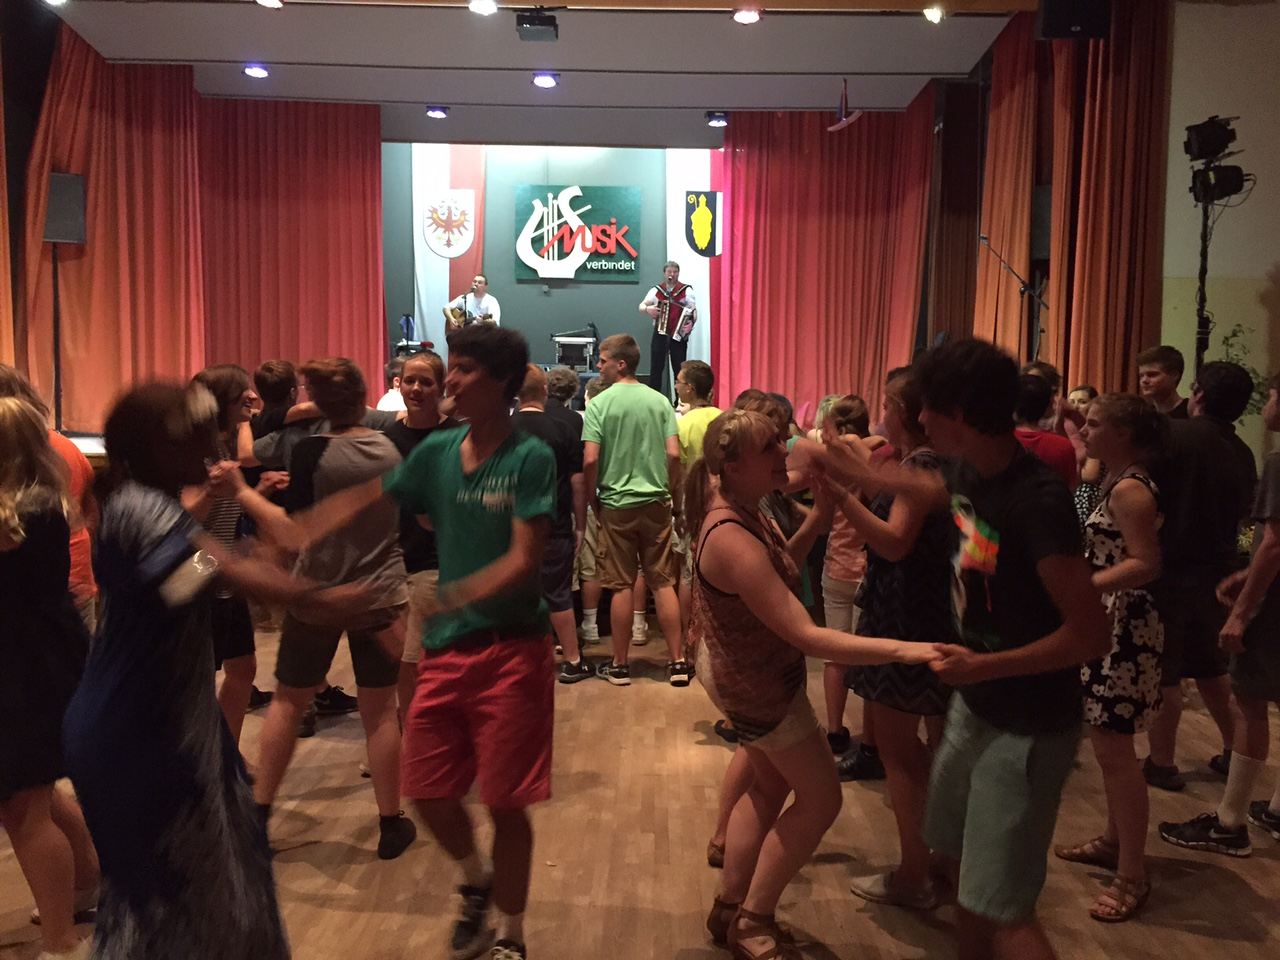 Dancing it up at a Tyrolean folk festival.